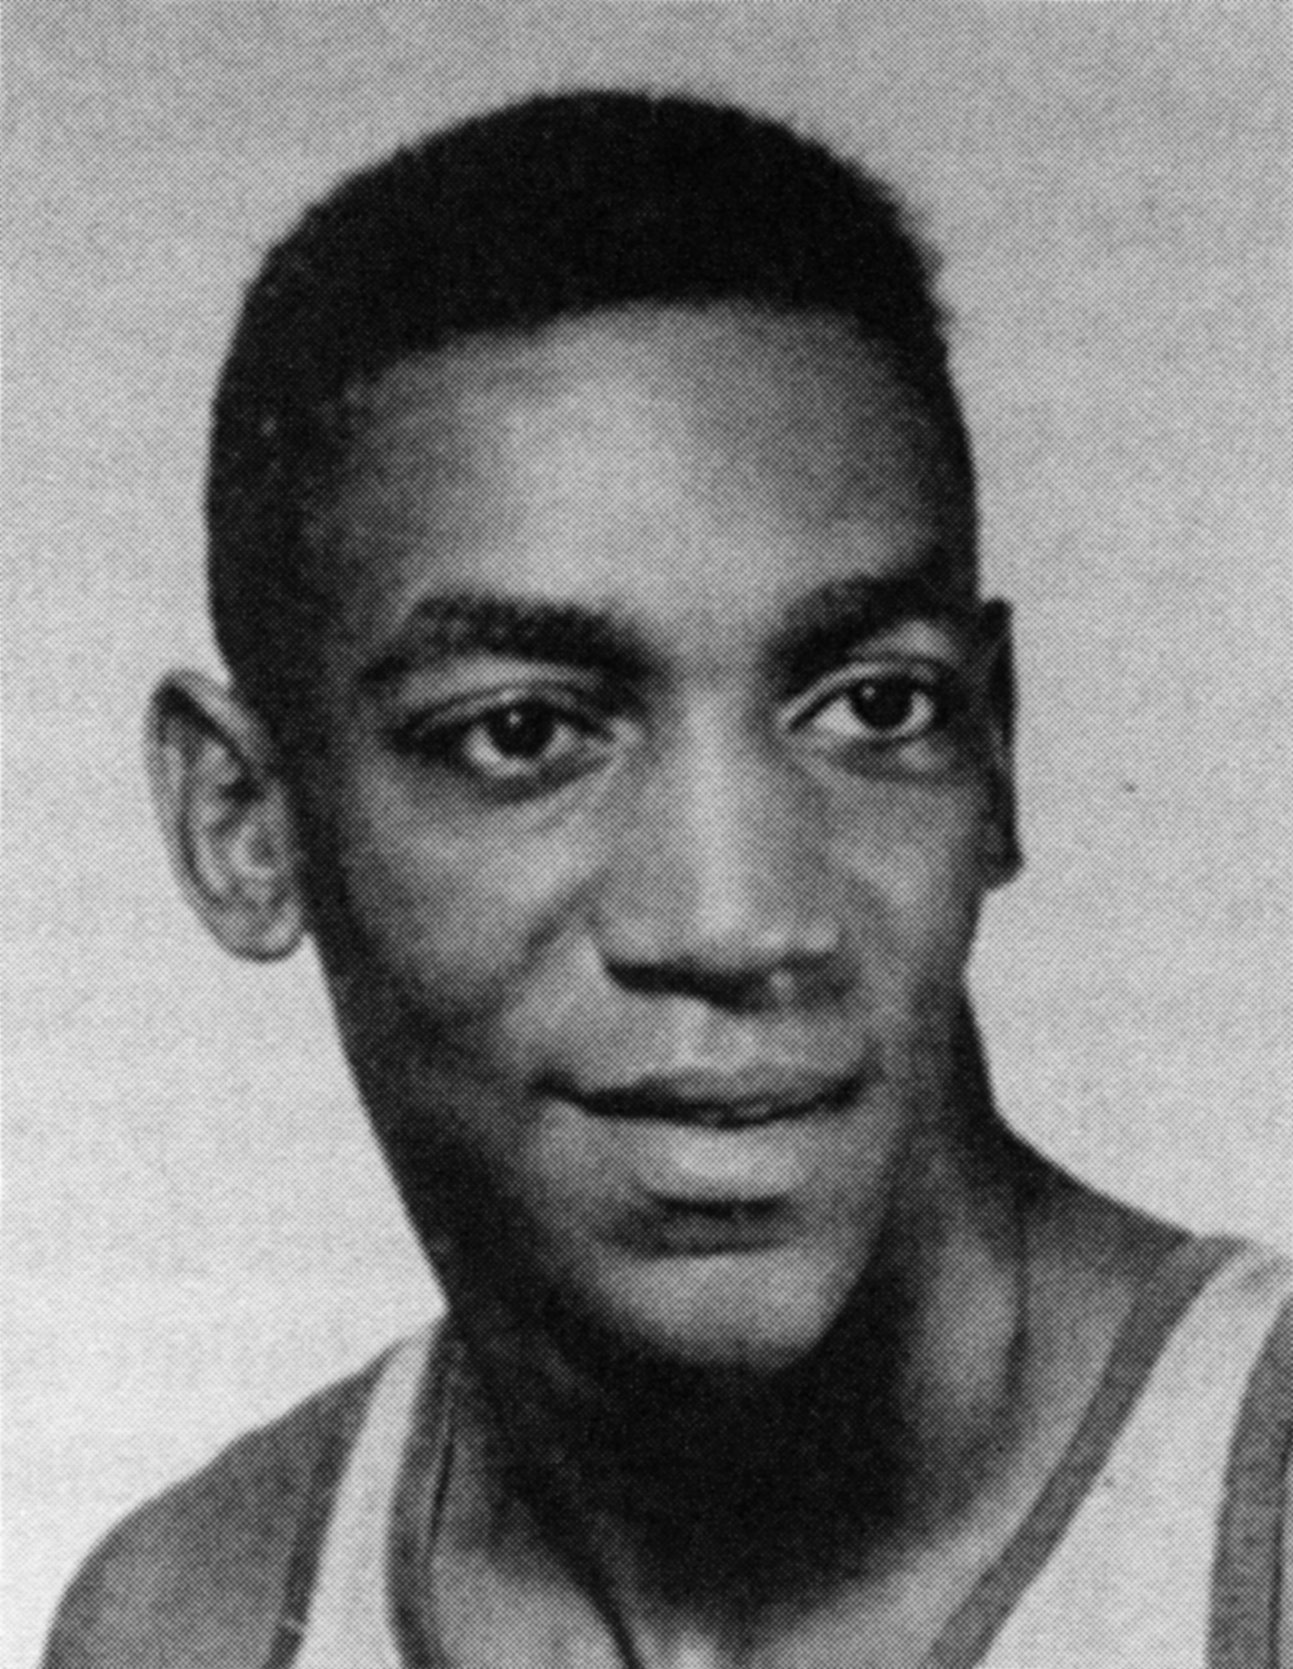 Bill Cosby yearbook photo one at pinterest.com at pinterest.com